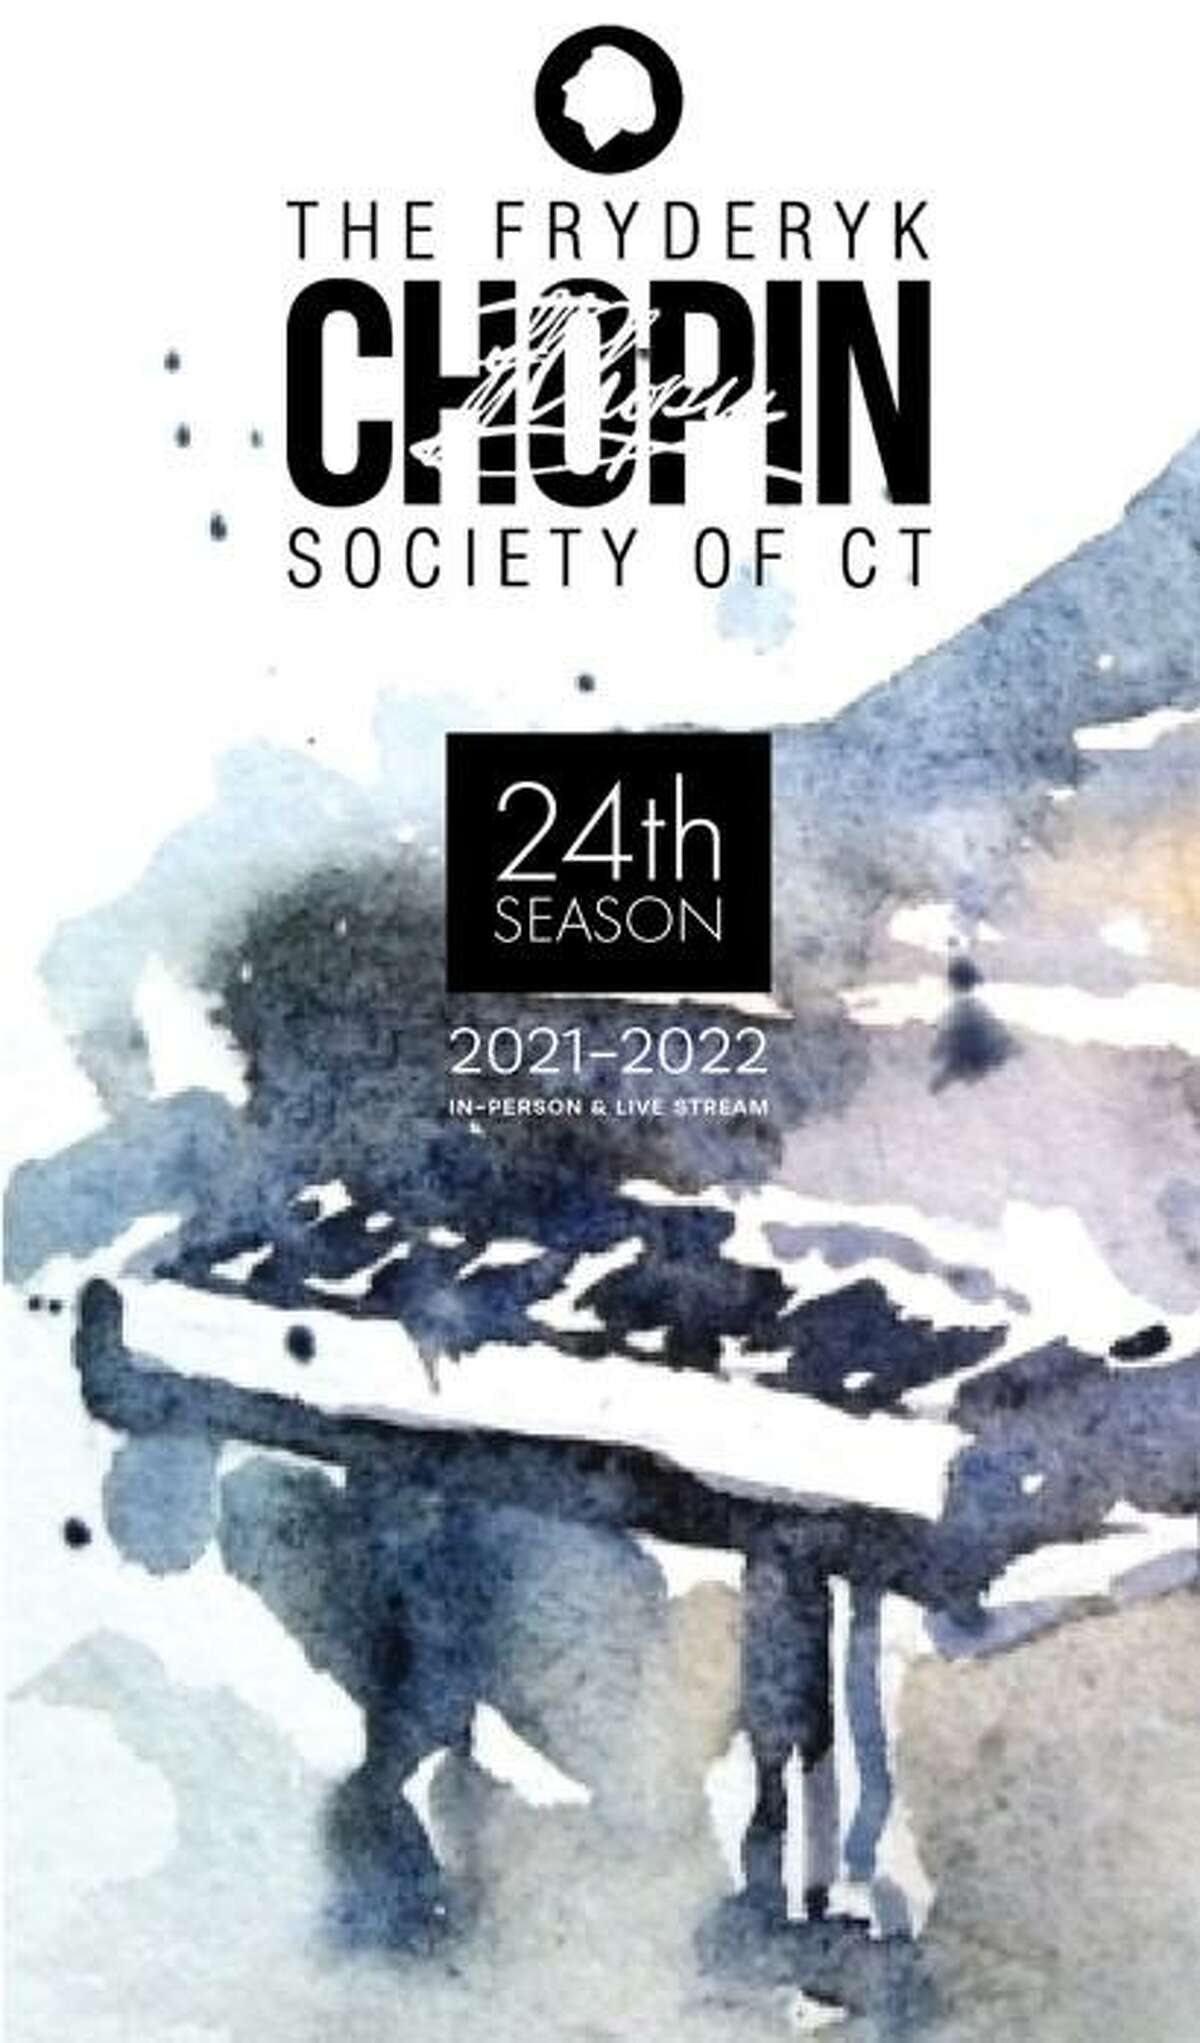 Chopin Society has announced its 2021-22 concert season at the New Britain Museum of American Art.